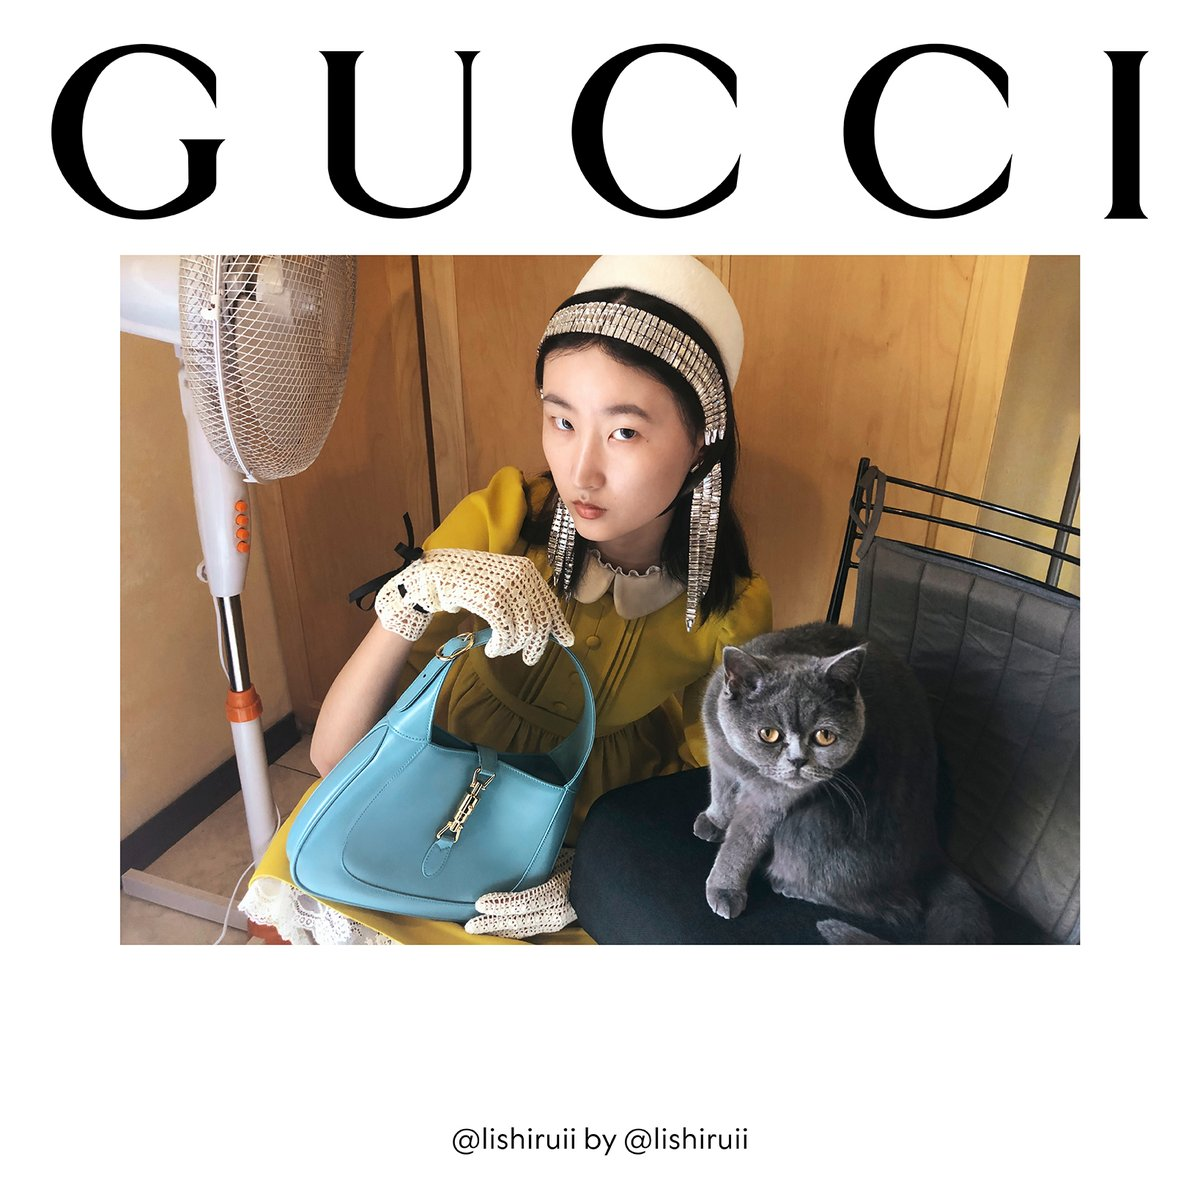 A lineup of authentic self-portraits make up #GucciTheRitual, the #GucciFW20 campaign imagined by #AlessandroMichele to subvert fashion traditions. Seen here together is a pastel leather #GucciJackie1961 bag from the new collection. https://t.co/Xg9wMzhVTg https://t.co/tXtPc834wb